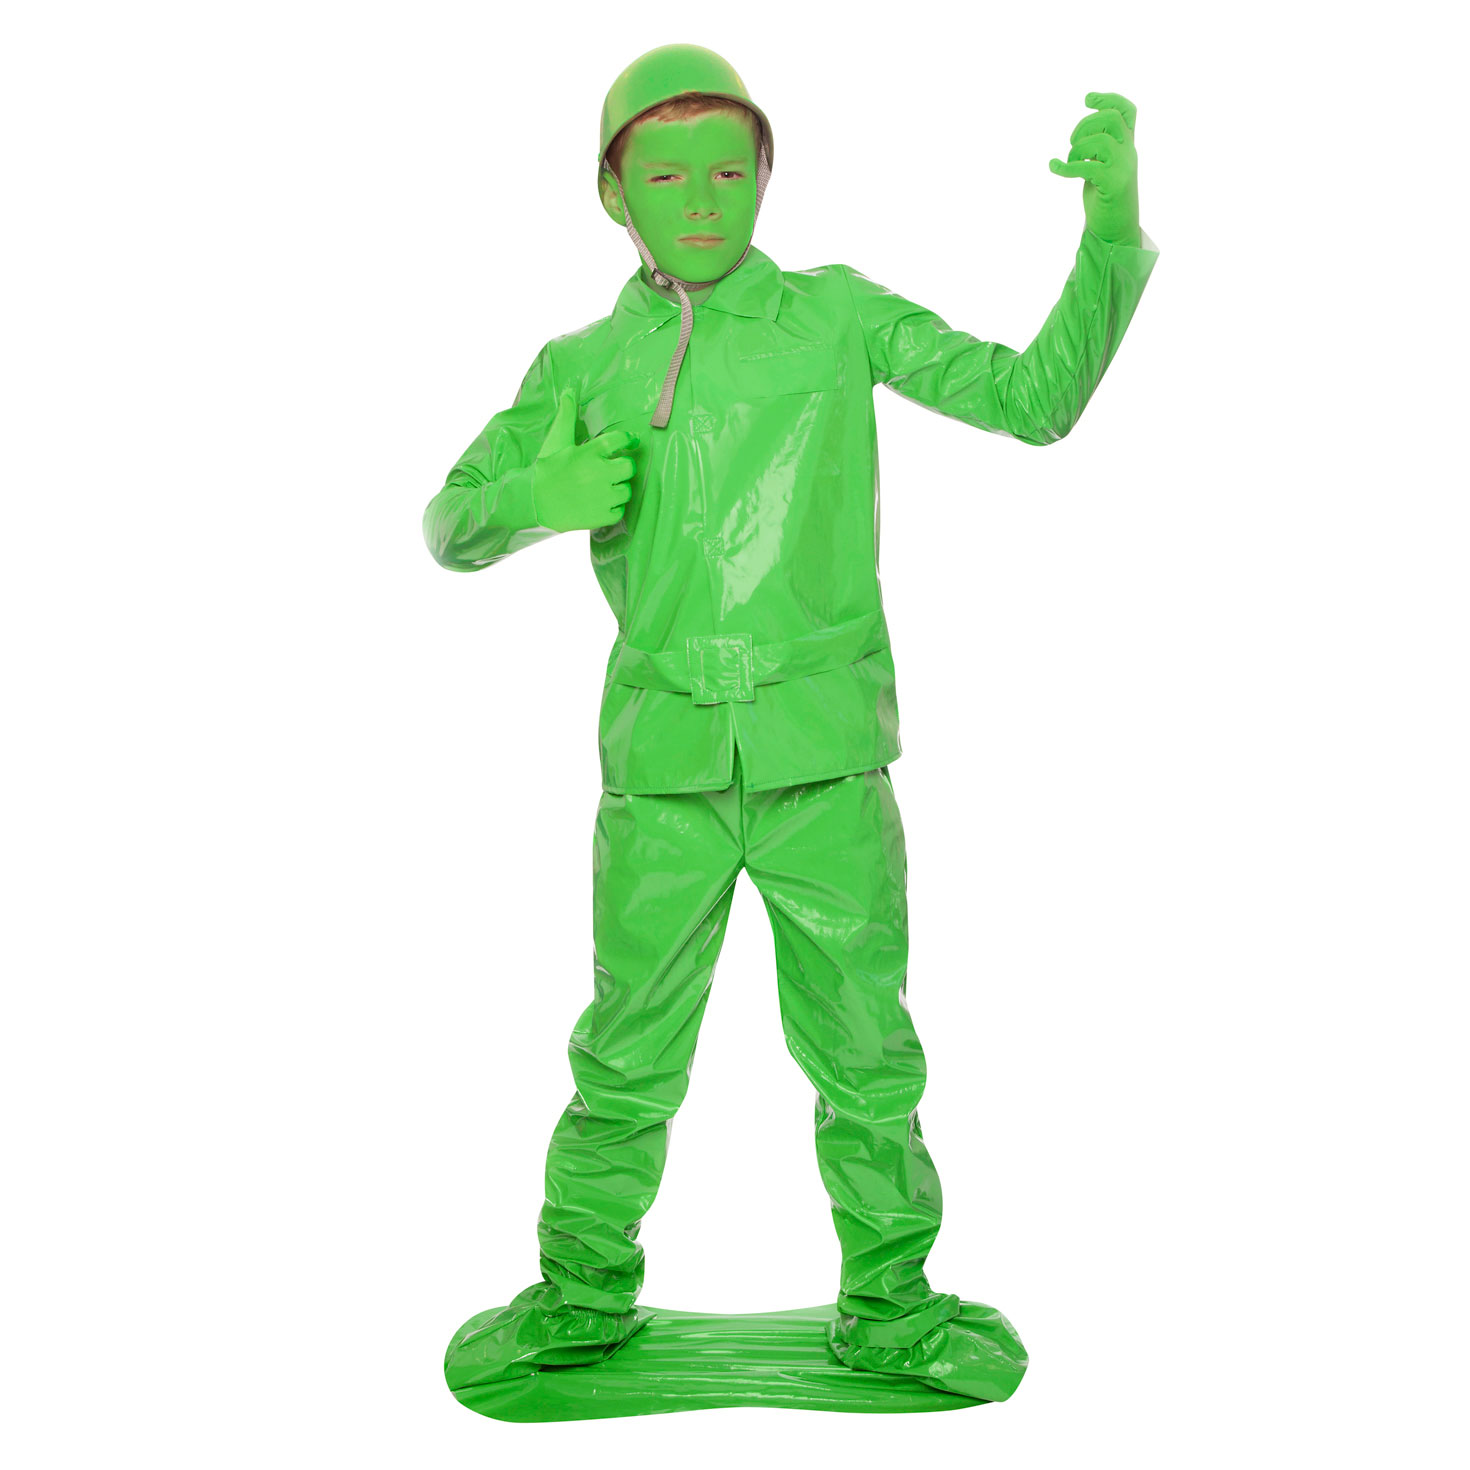 Army Toys For Boys : Boys toy soldier fancy dress costume kids army military